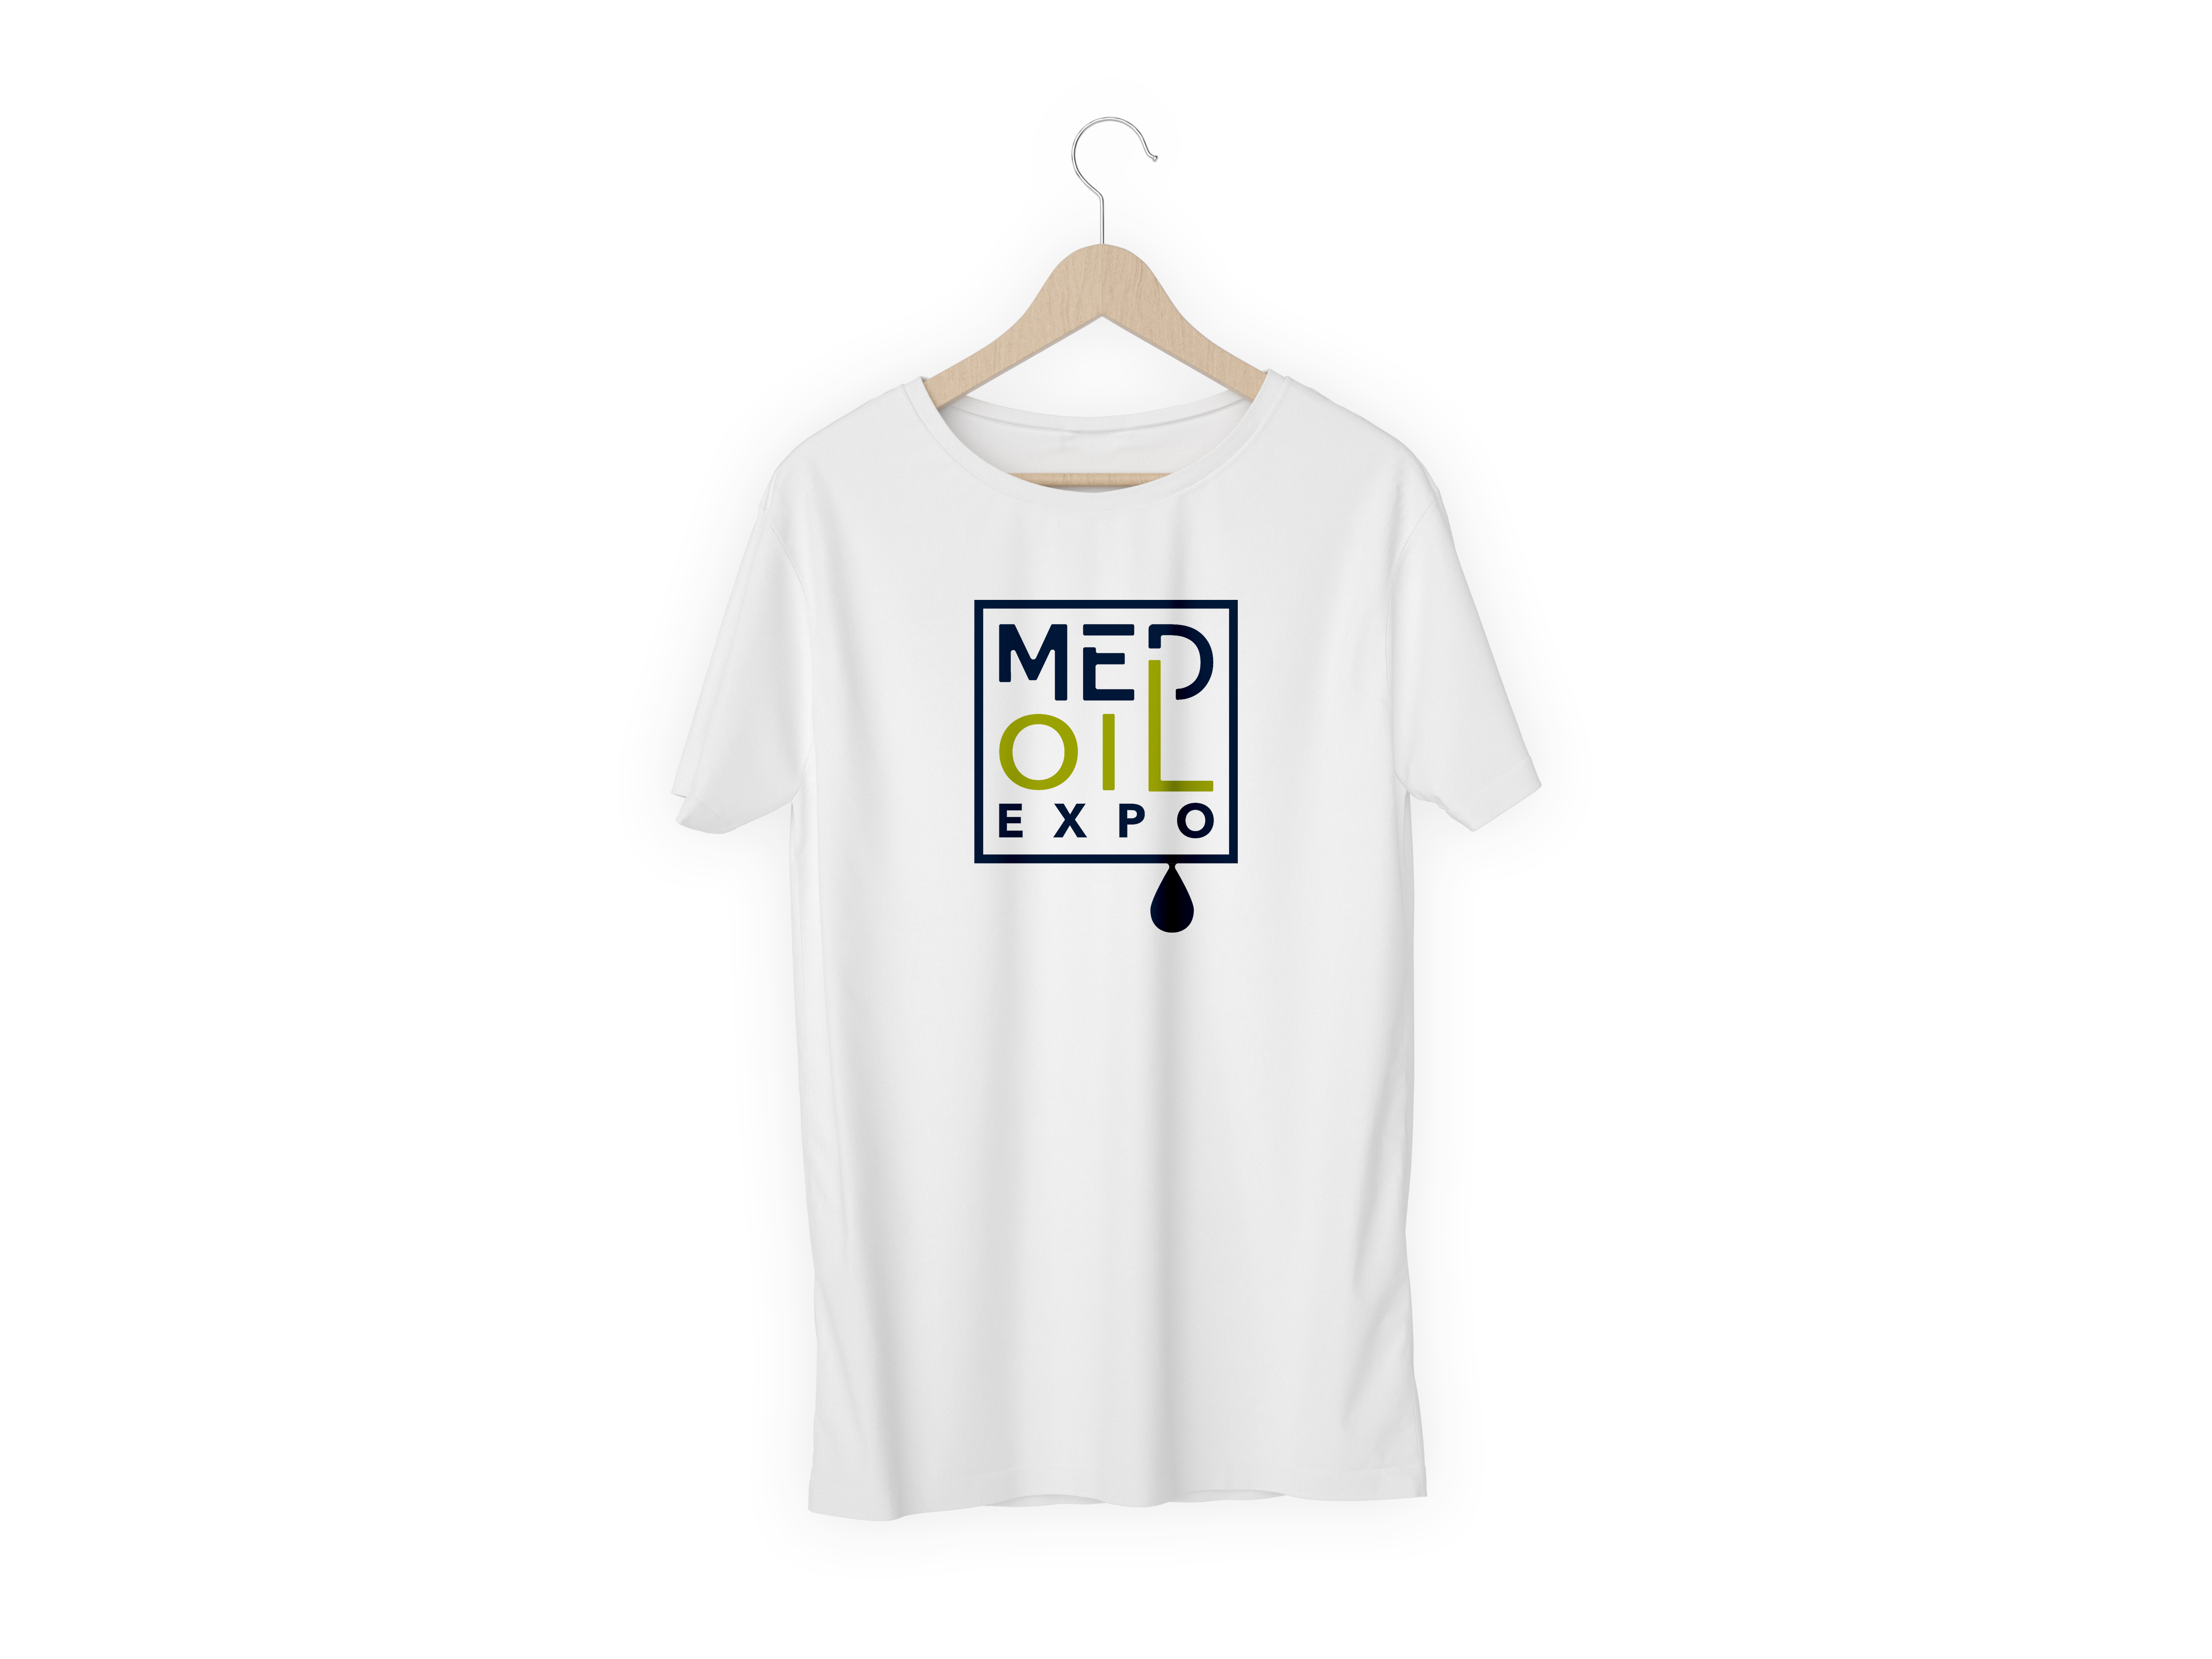 Free T-Shirt Mockup PSD by Anthony Boyd Graphics